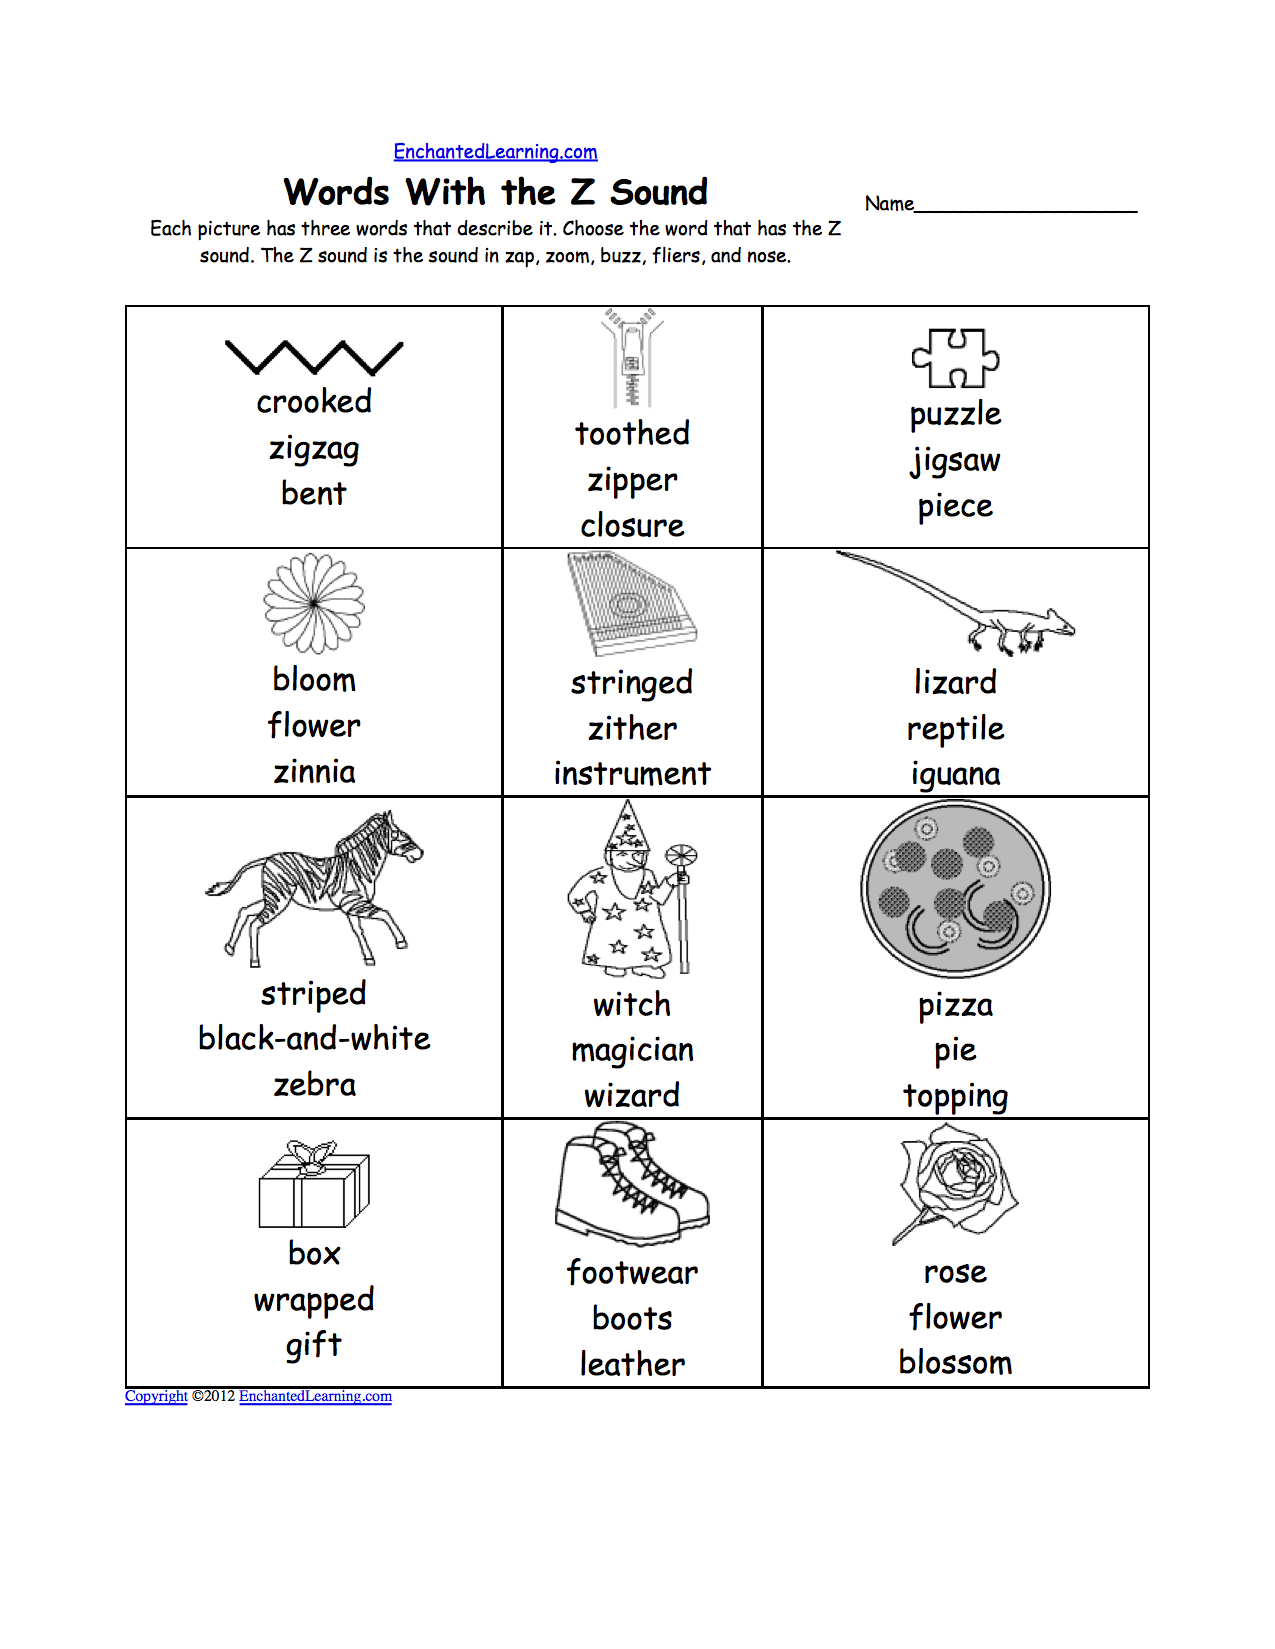 Aldiablosus  Winning Phonics Worksheets Multiple Choice Worksheets To Print  With Gorgeous Phonics Worksheets Multiple Choice Worksheets To Print  Enchantedlearningcom With Adorable Function Rule Worksheet Also Compare Two Worksheets In Excel In Addition Thermometer Worksheet And Massmass Stoichiometry Worksheet As Well As Famous Ocean Liner Math Worksheet Answers Additionally Writing And Naming Ionic Compounds Worksheet From Enchantedlearningcom With Aldiablosus  Gorgeous Phonics Worksheets Multiple Choice Worksheets To Print  With Adorable Phonics Worksheets Multiple Choice Worksheets To Print  Enchantedlearningcom And Winning Function Rule Worksheet Also Compare Two Worksheets In Excel In Addition Thermometer Worksheet From Enchantedlearningcom